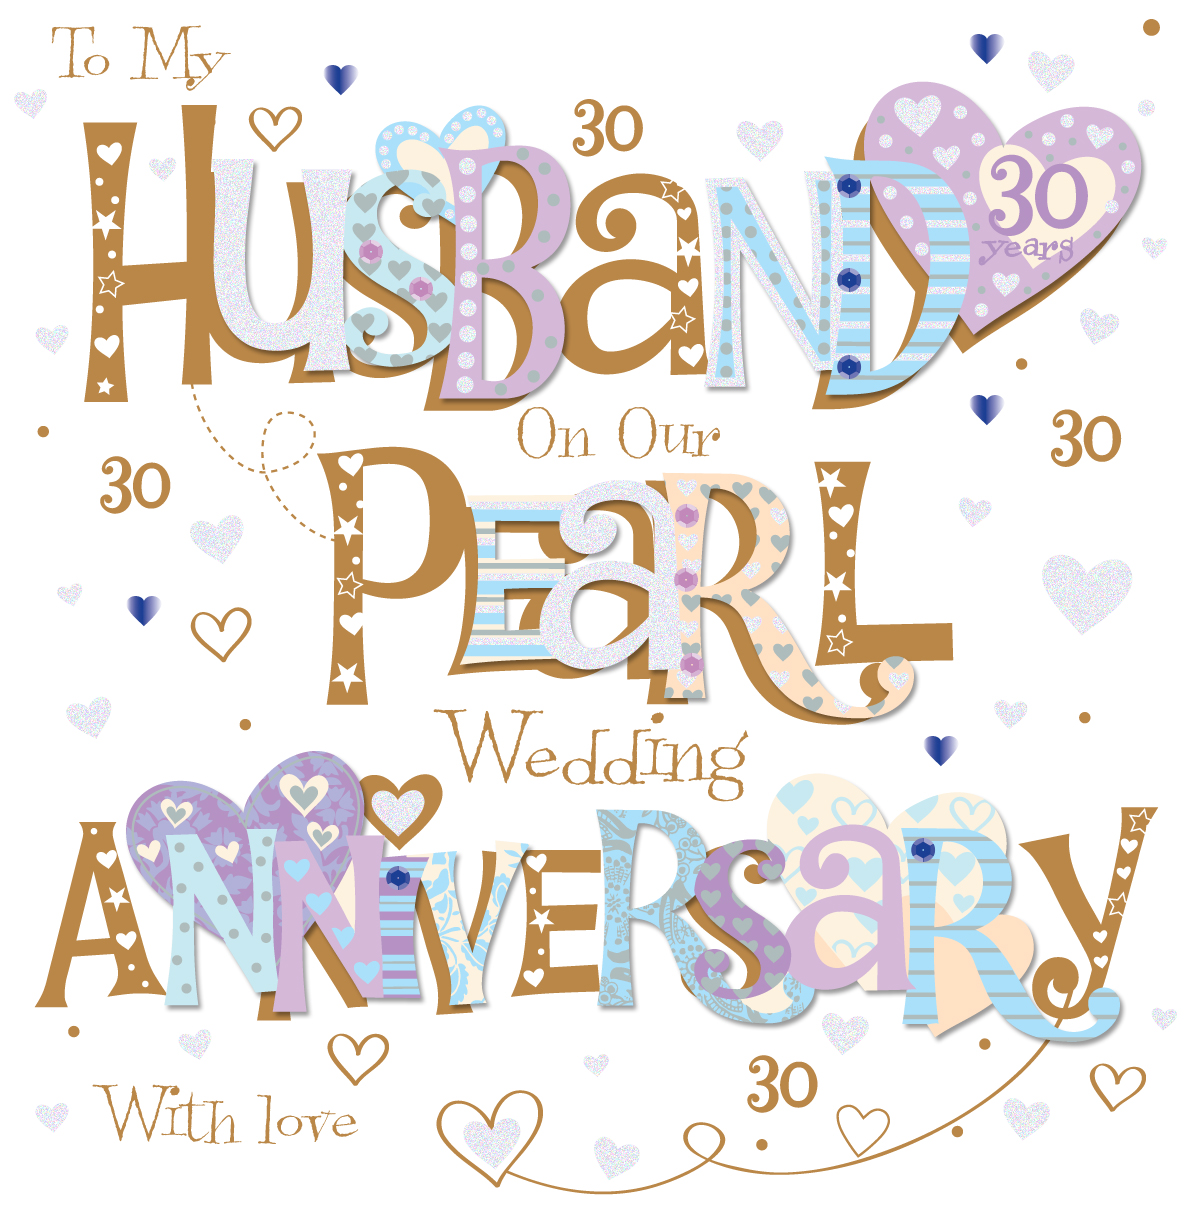 Husband pearl 30th wedding anniversary greeting card cards love husband pearl 30th wedding anniversary greeting card m4hsunfo